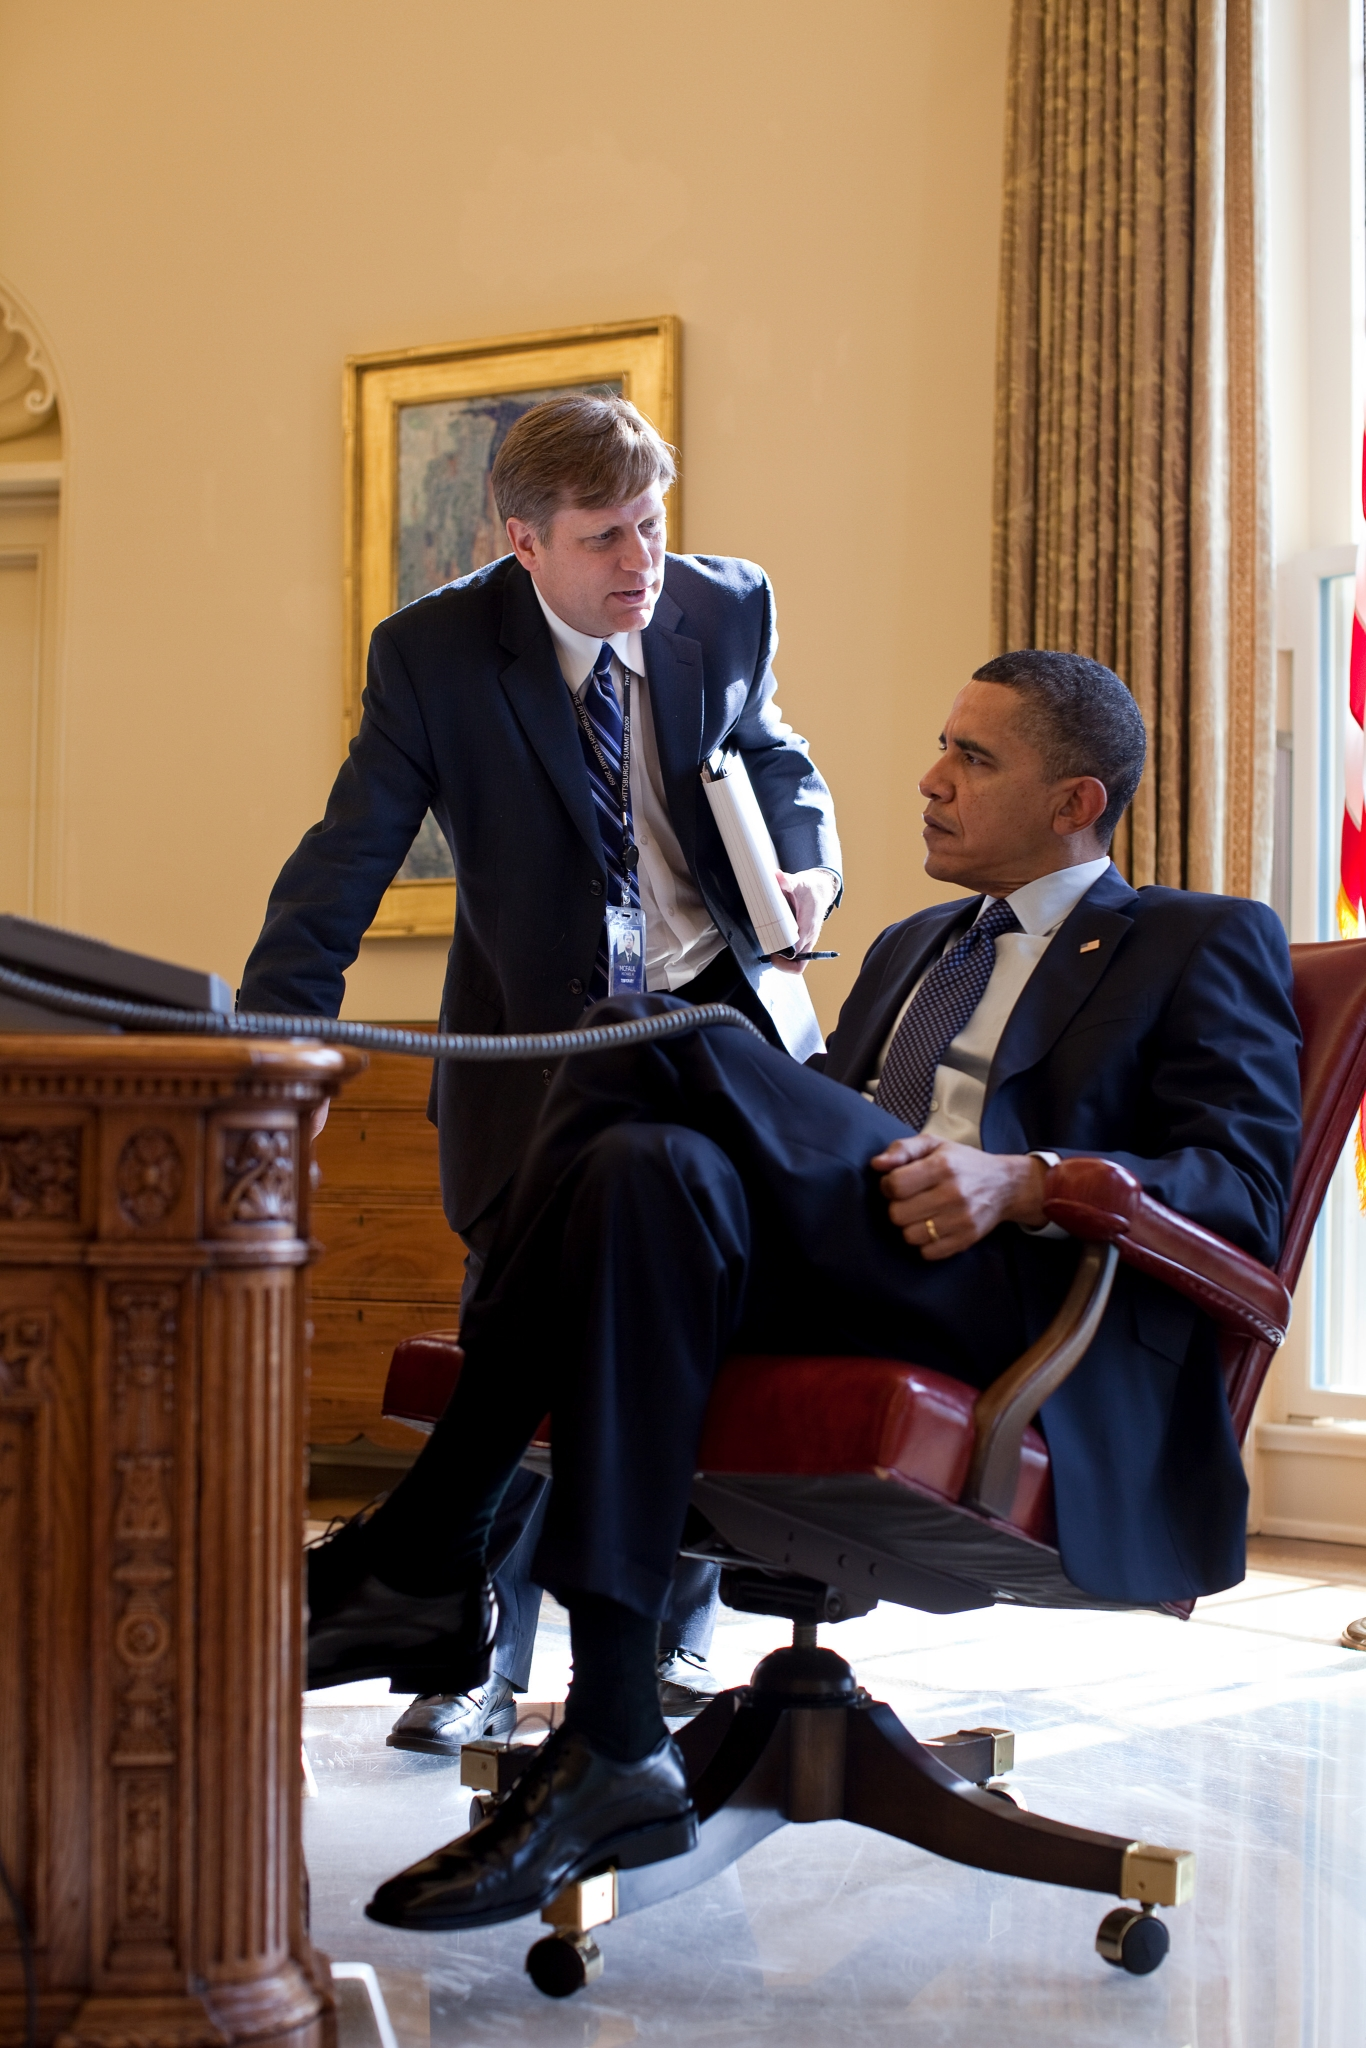 Mike McFaul briefs President Barack Obama in the Oval Office, February 24, 2010. (Official White House Photo by Pete Souza)